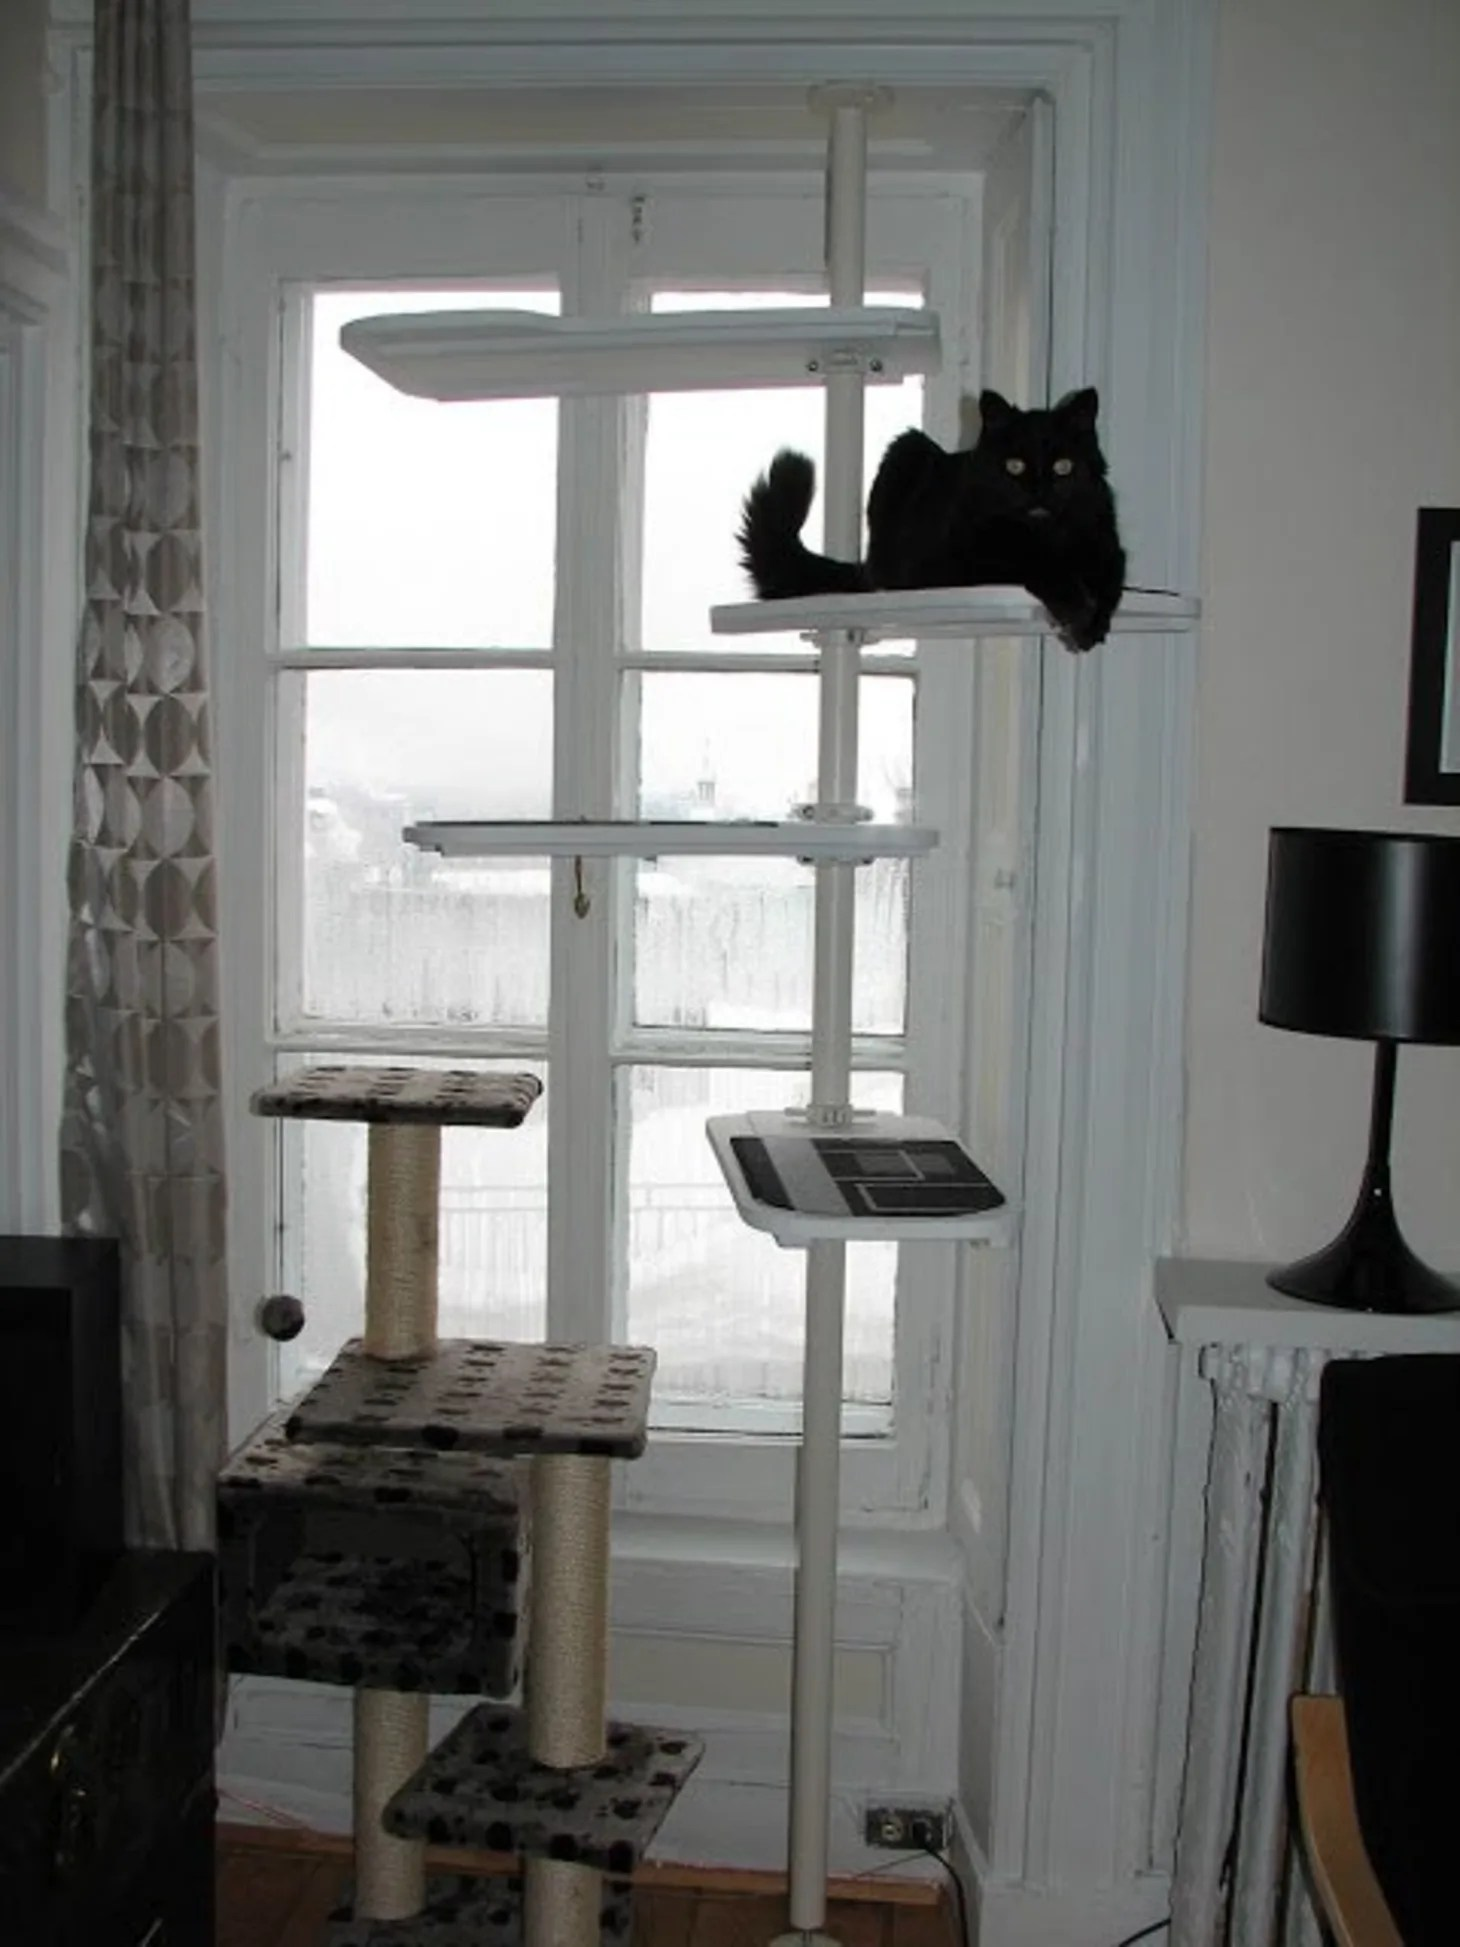 Ikea Chat 7 Ikea Hacks Your Cats Will Love | Apartment Therapy